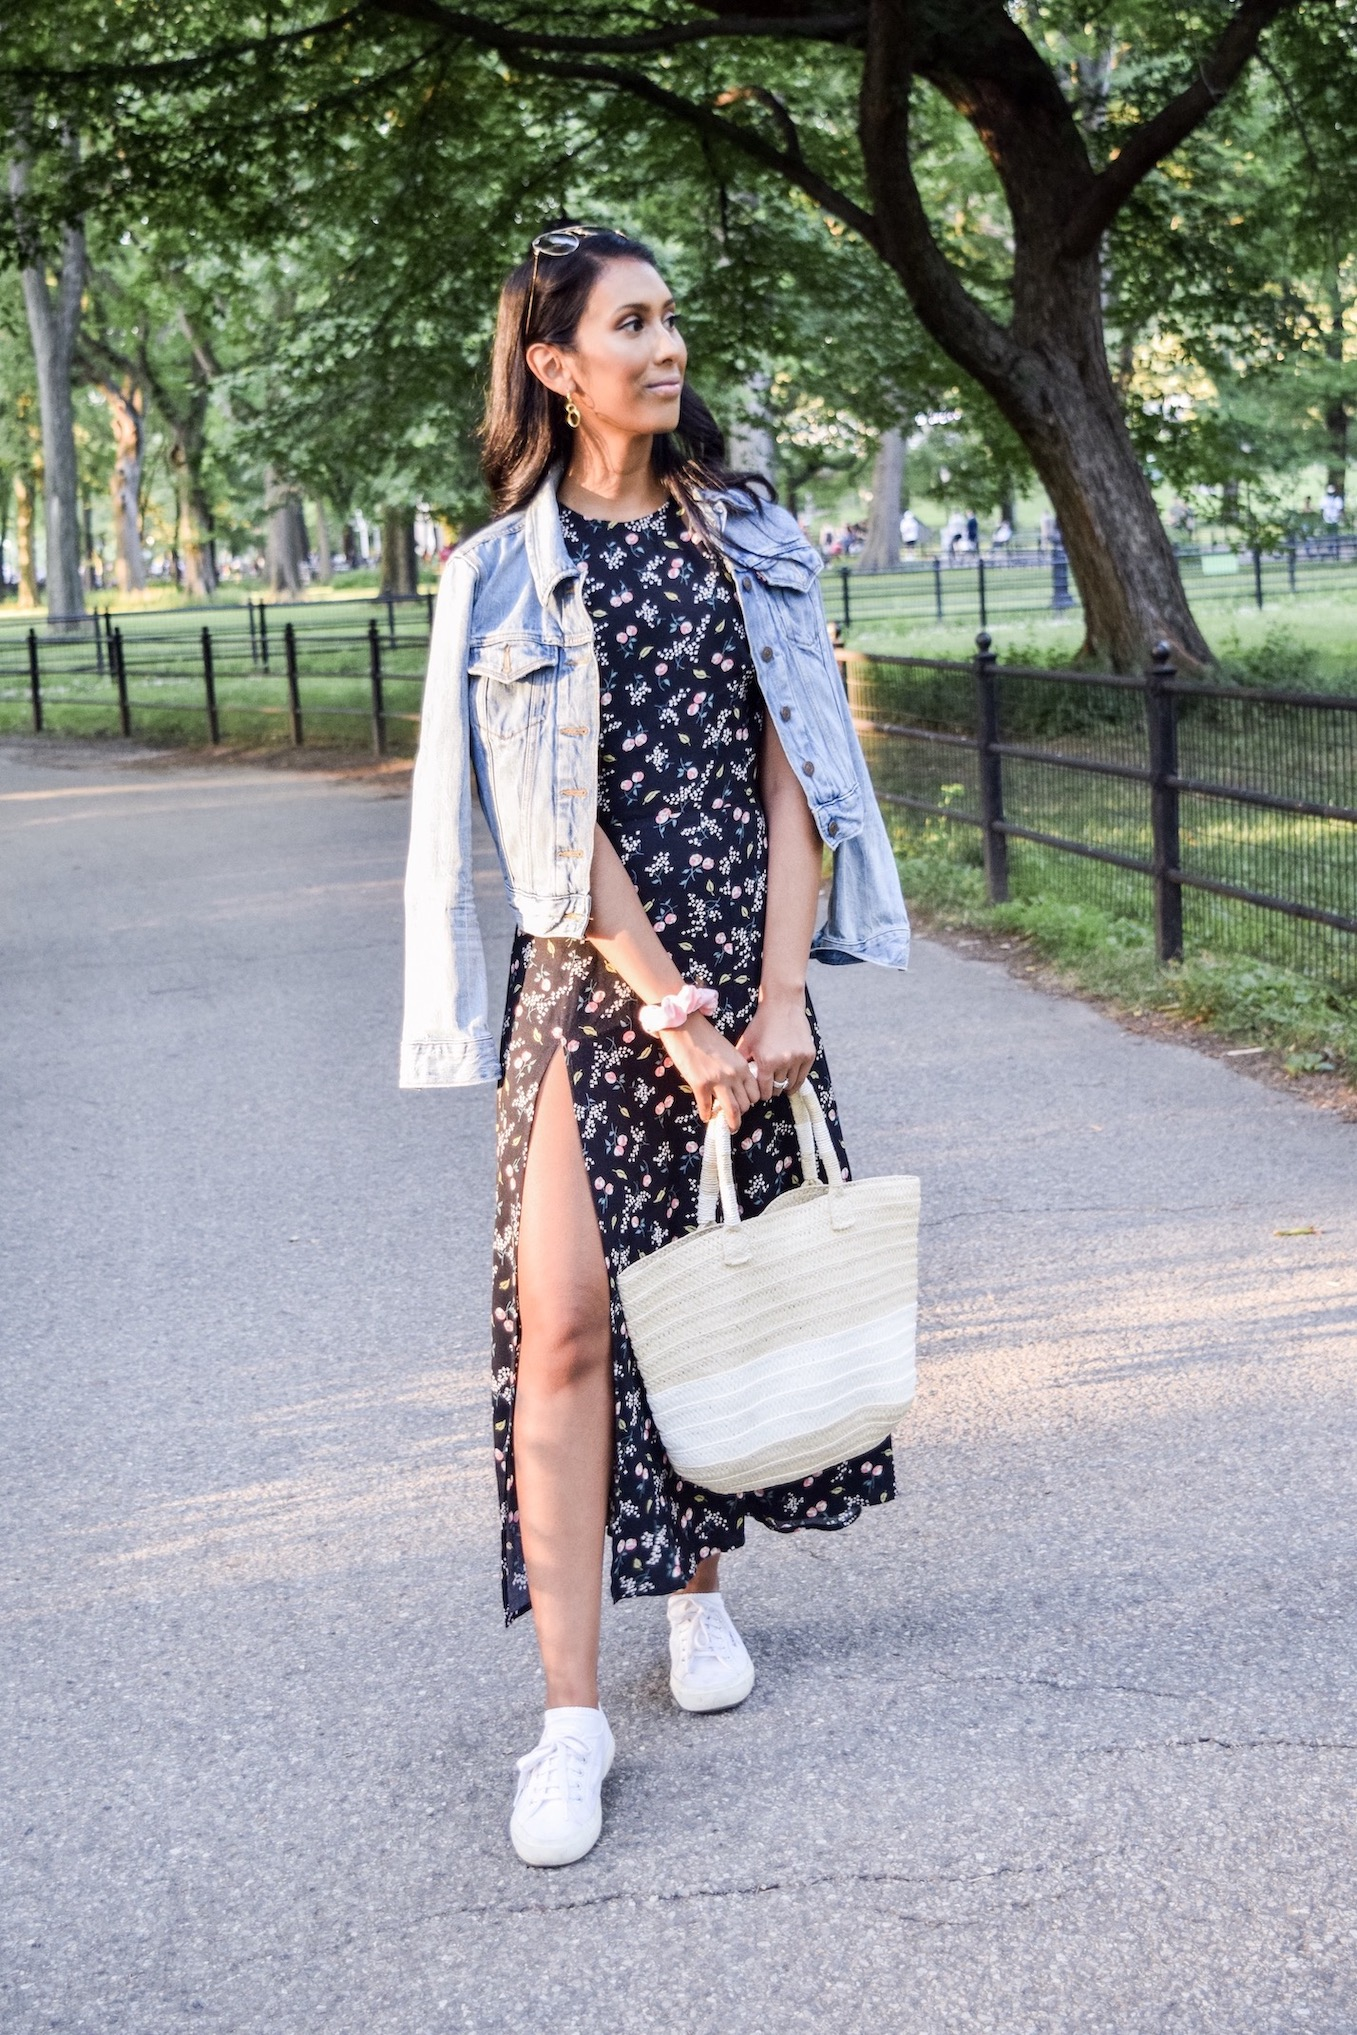 Floral dress and denim jacket // A Week Of Conscious Trend-Forward Outfits With Sabrina Ramkhelawan From Flaunt Your Fancy on The Good Trade